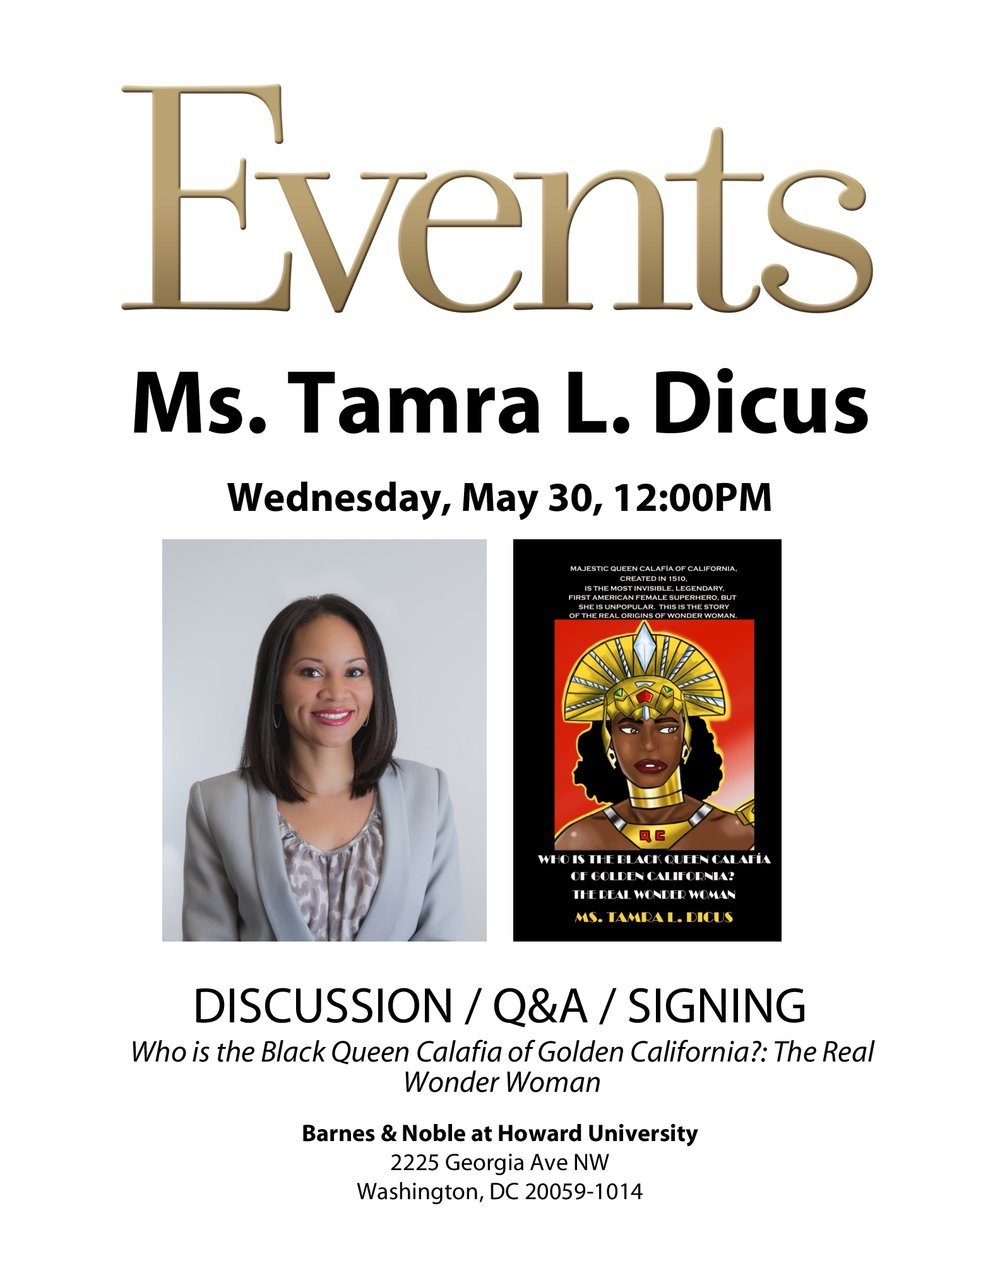 Dicus BN Howard University bookstore event flyer.jpg